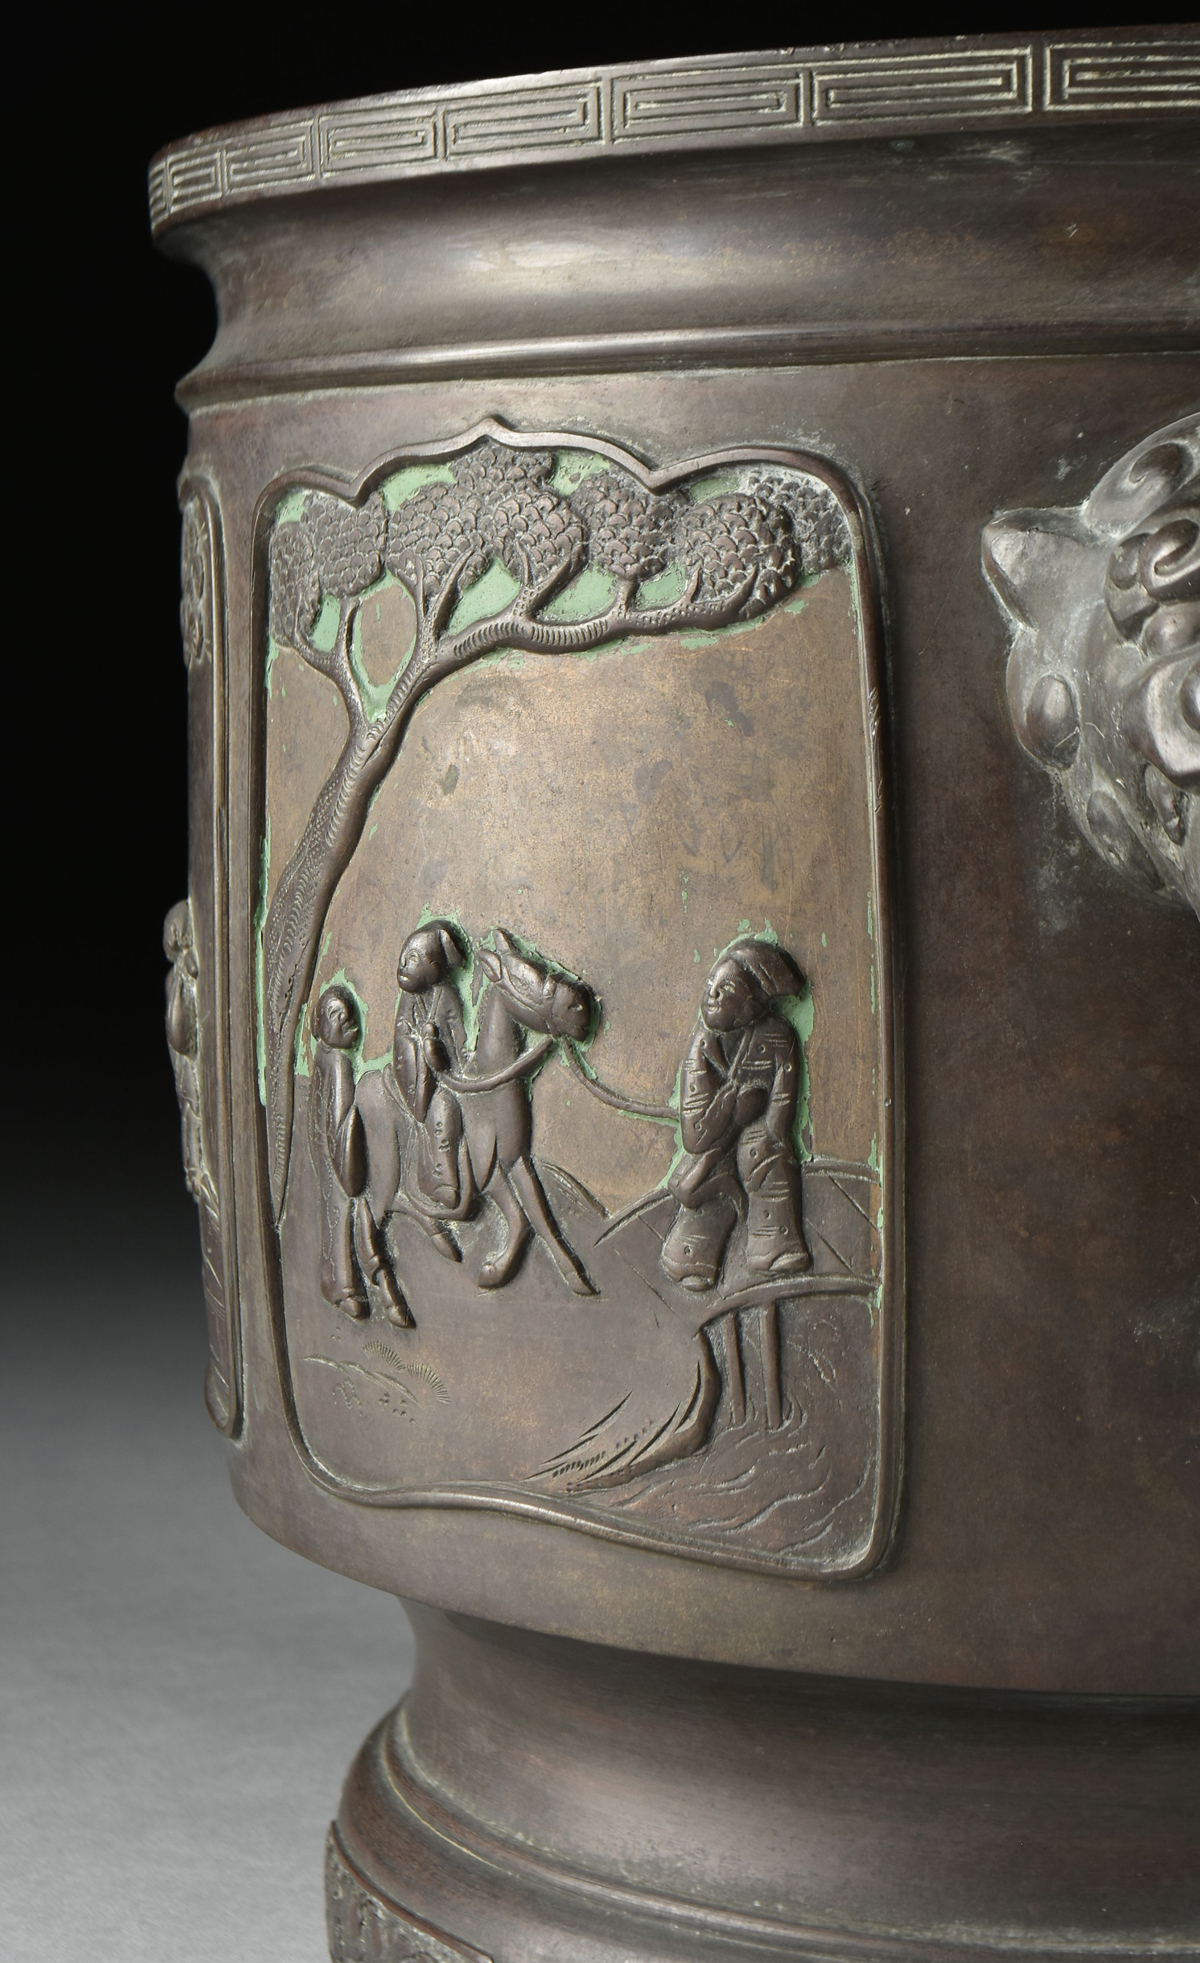 Lot 22 - A CHINESE RELIEF FIGURAL BRONZE CENSER, QING DYNASTY (1644-1912), of cylindrical form, the edge with